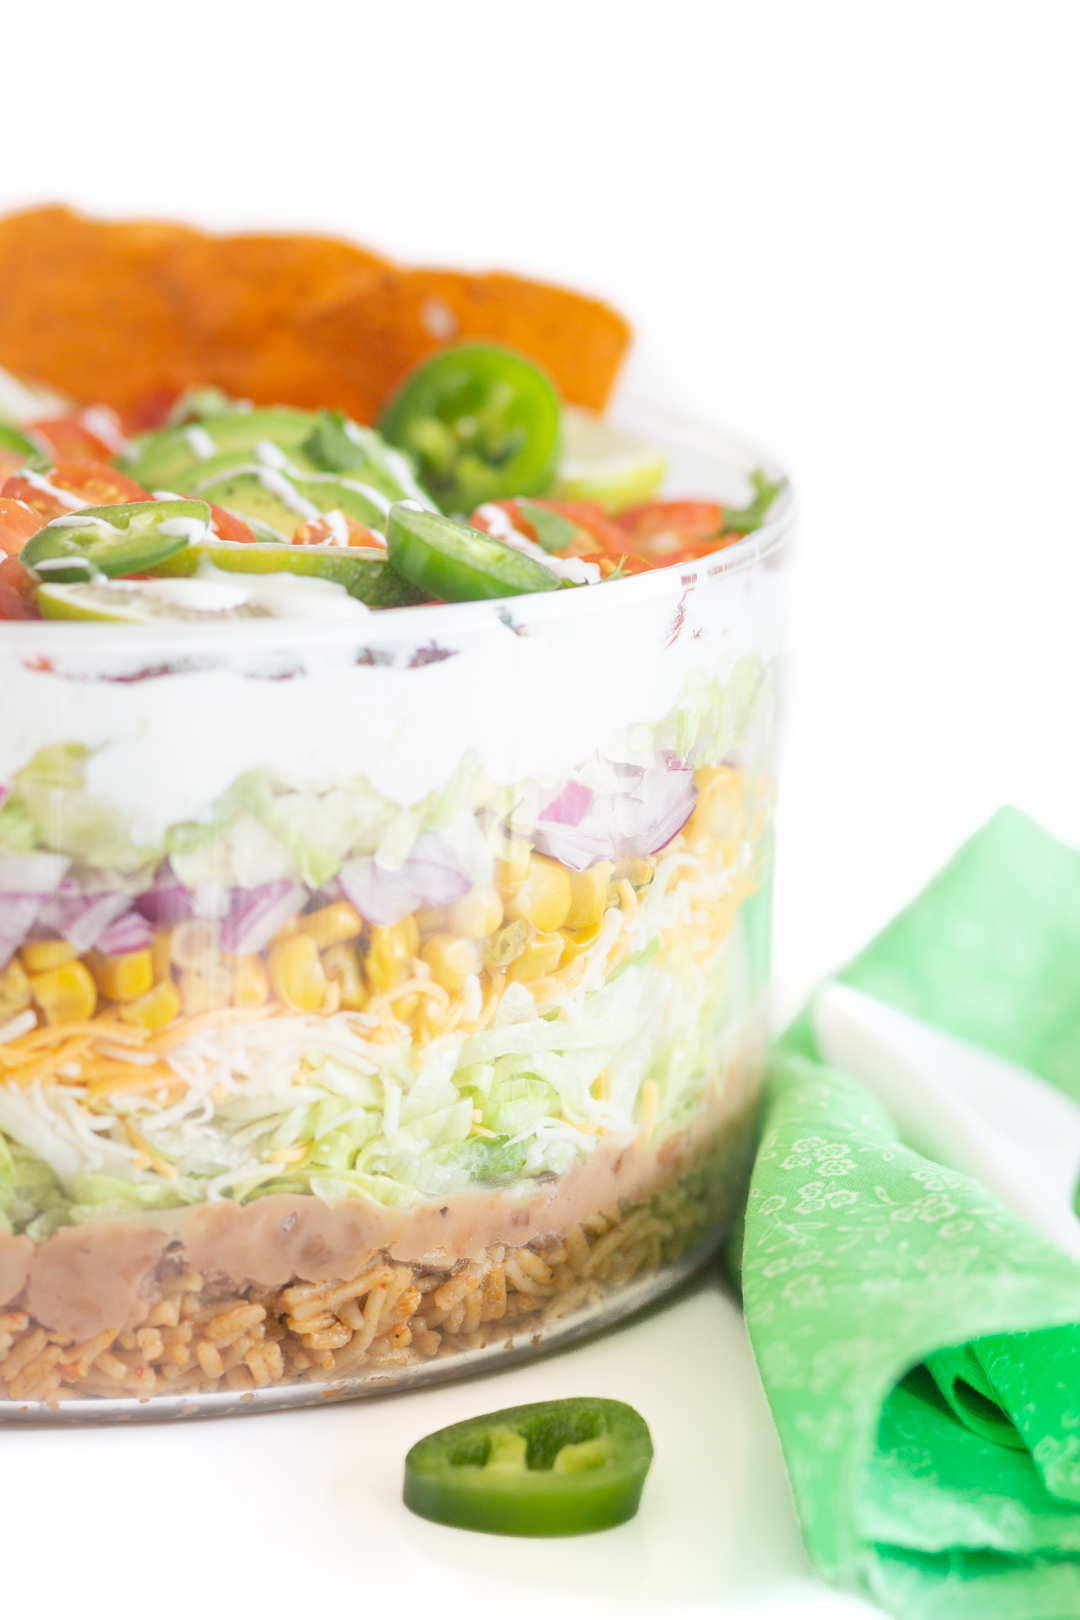 up close view of layers of salad in a glass serving bowl.